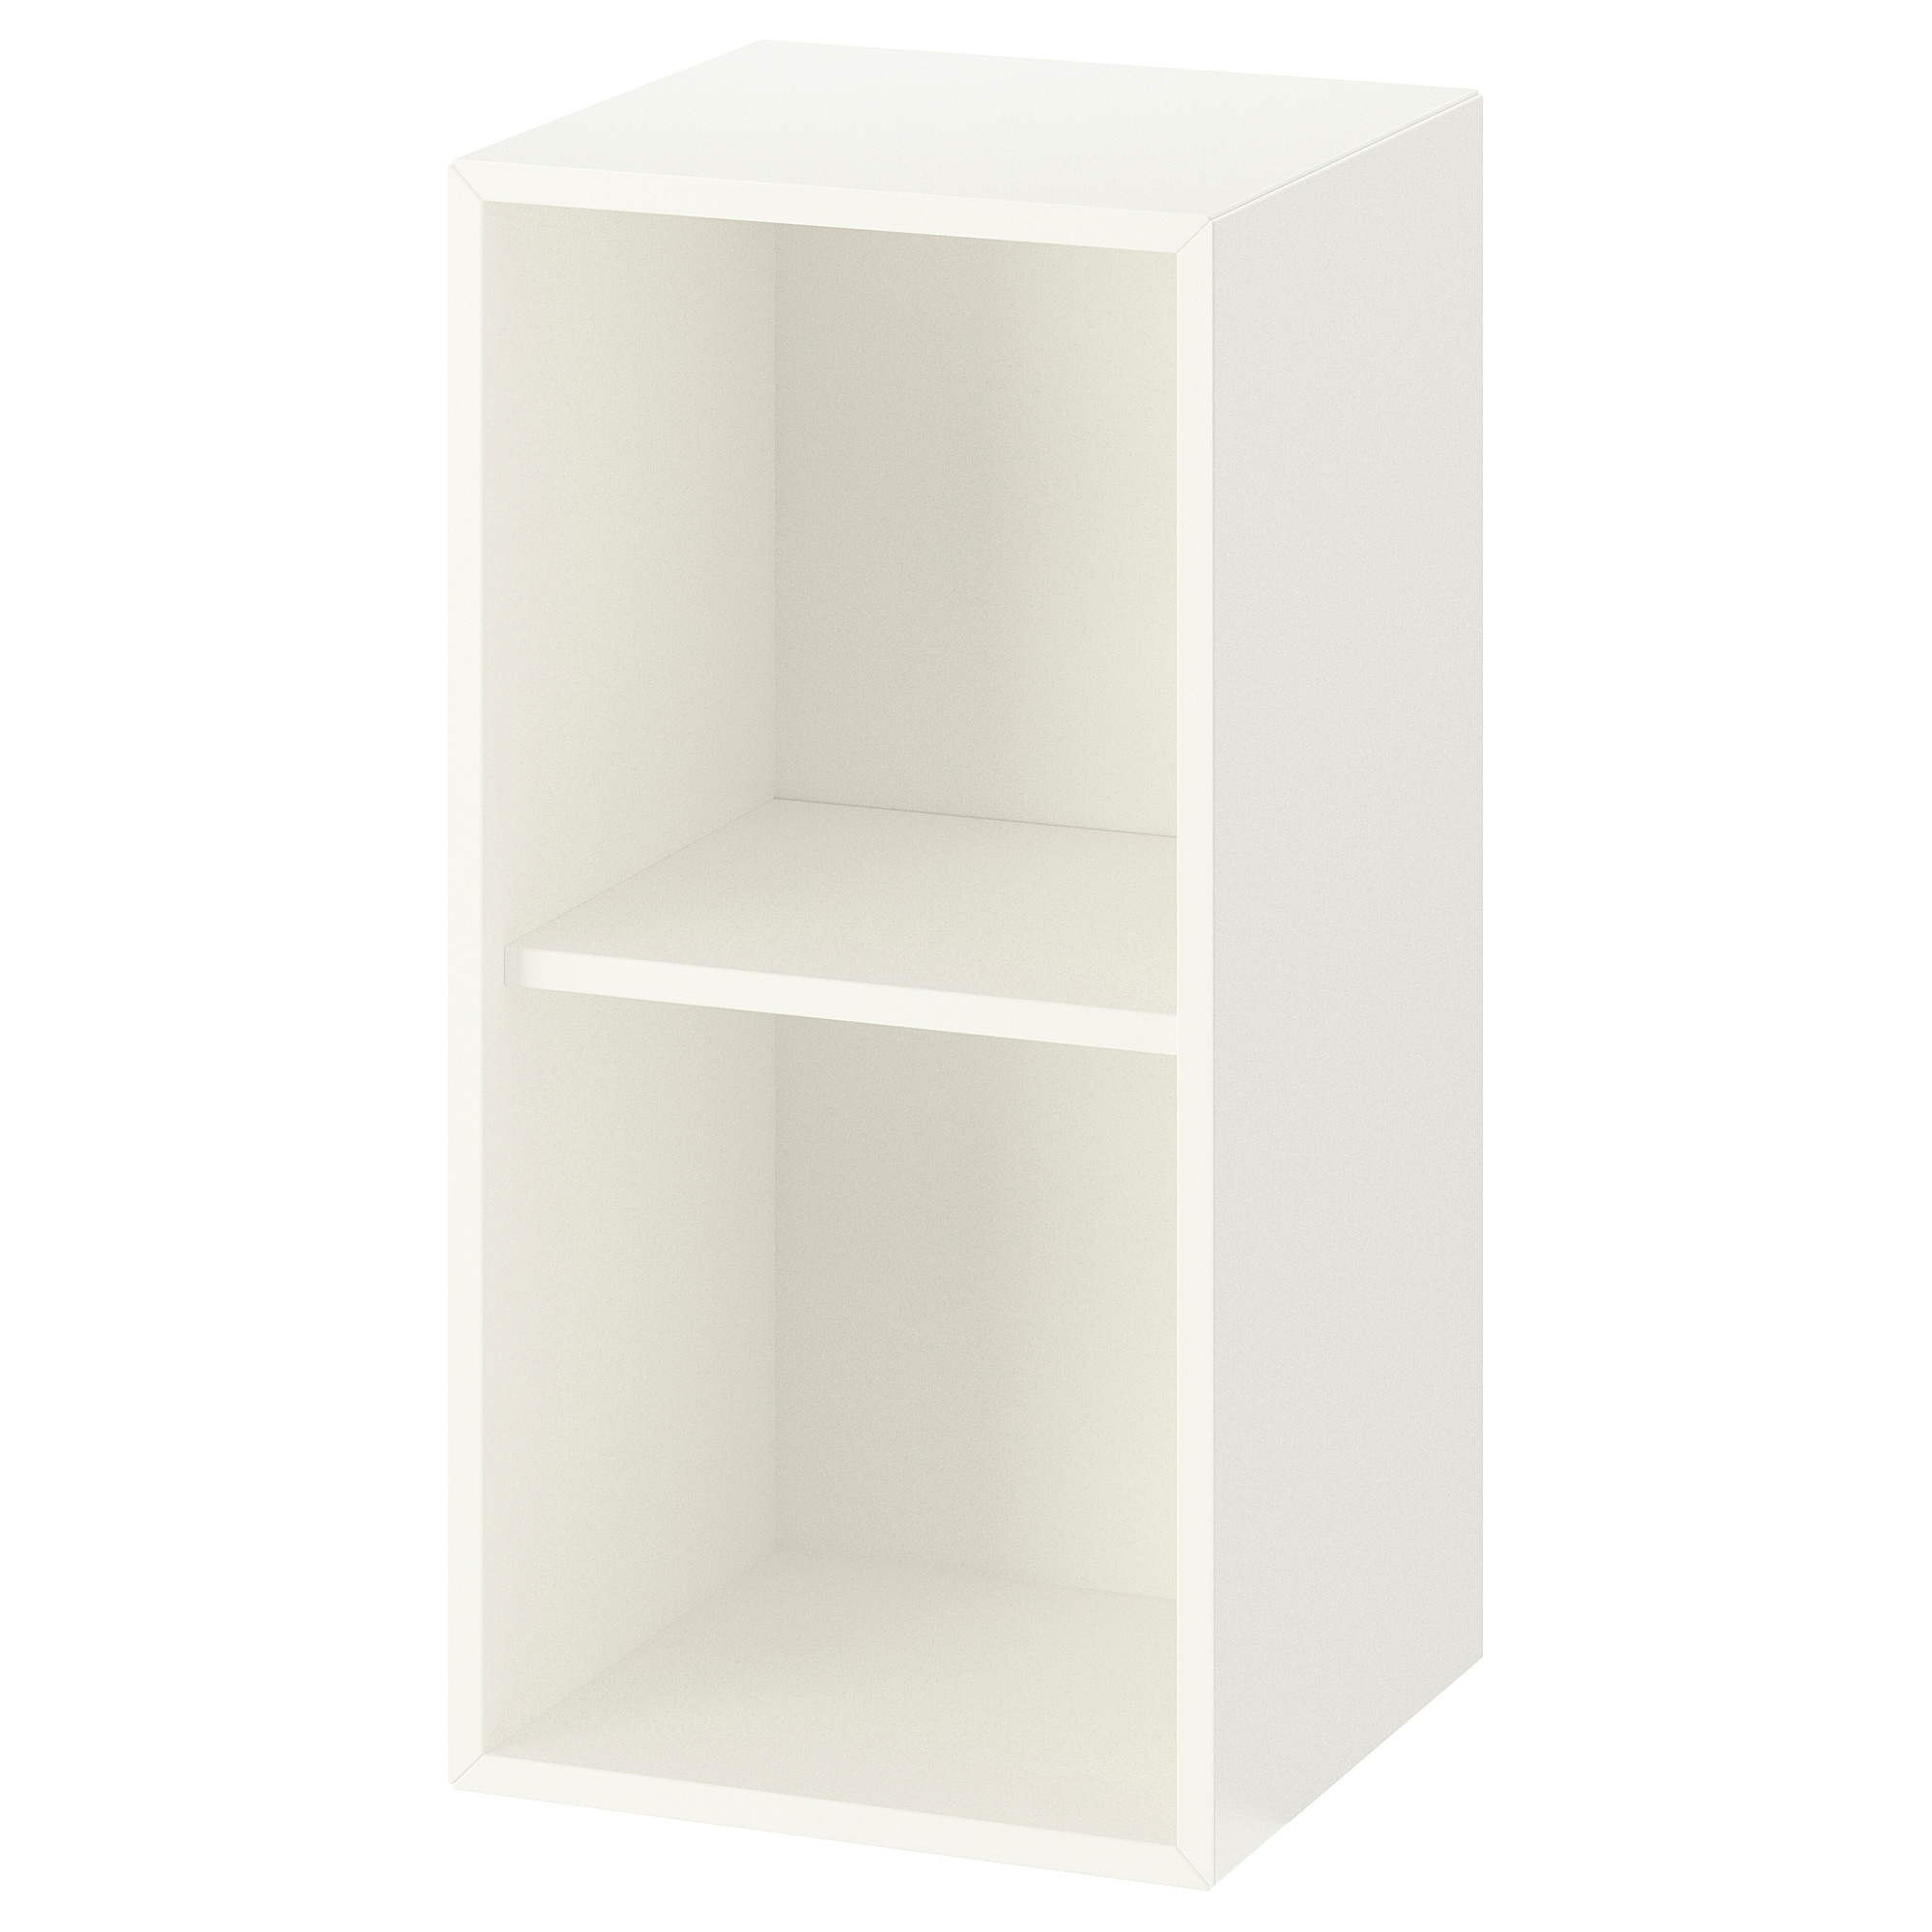 Meubles Cases Ikea Eket Cabinet With 2 Compartments White